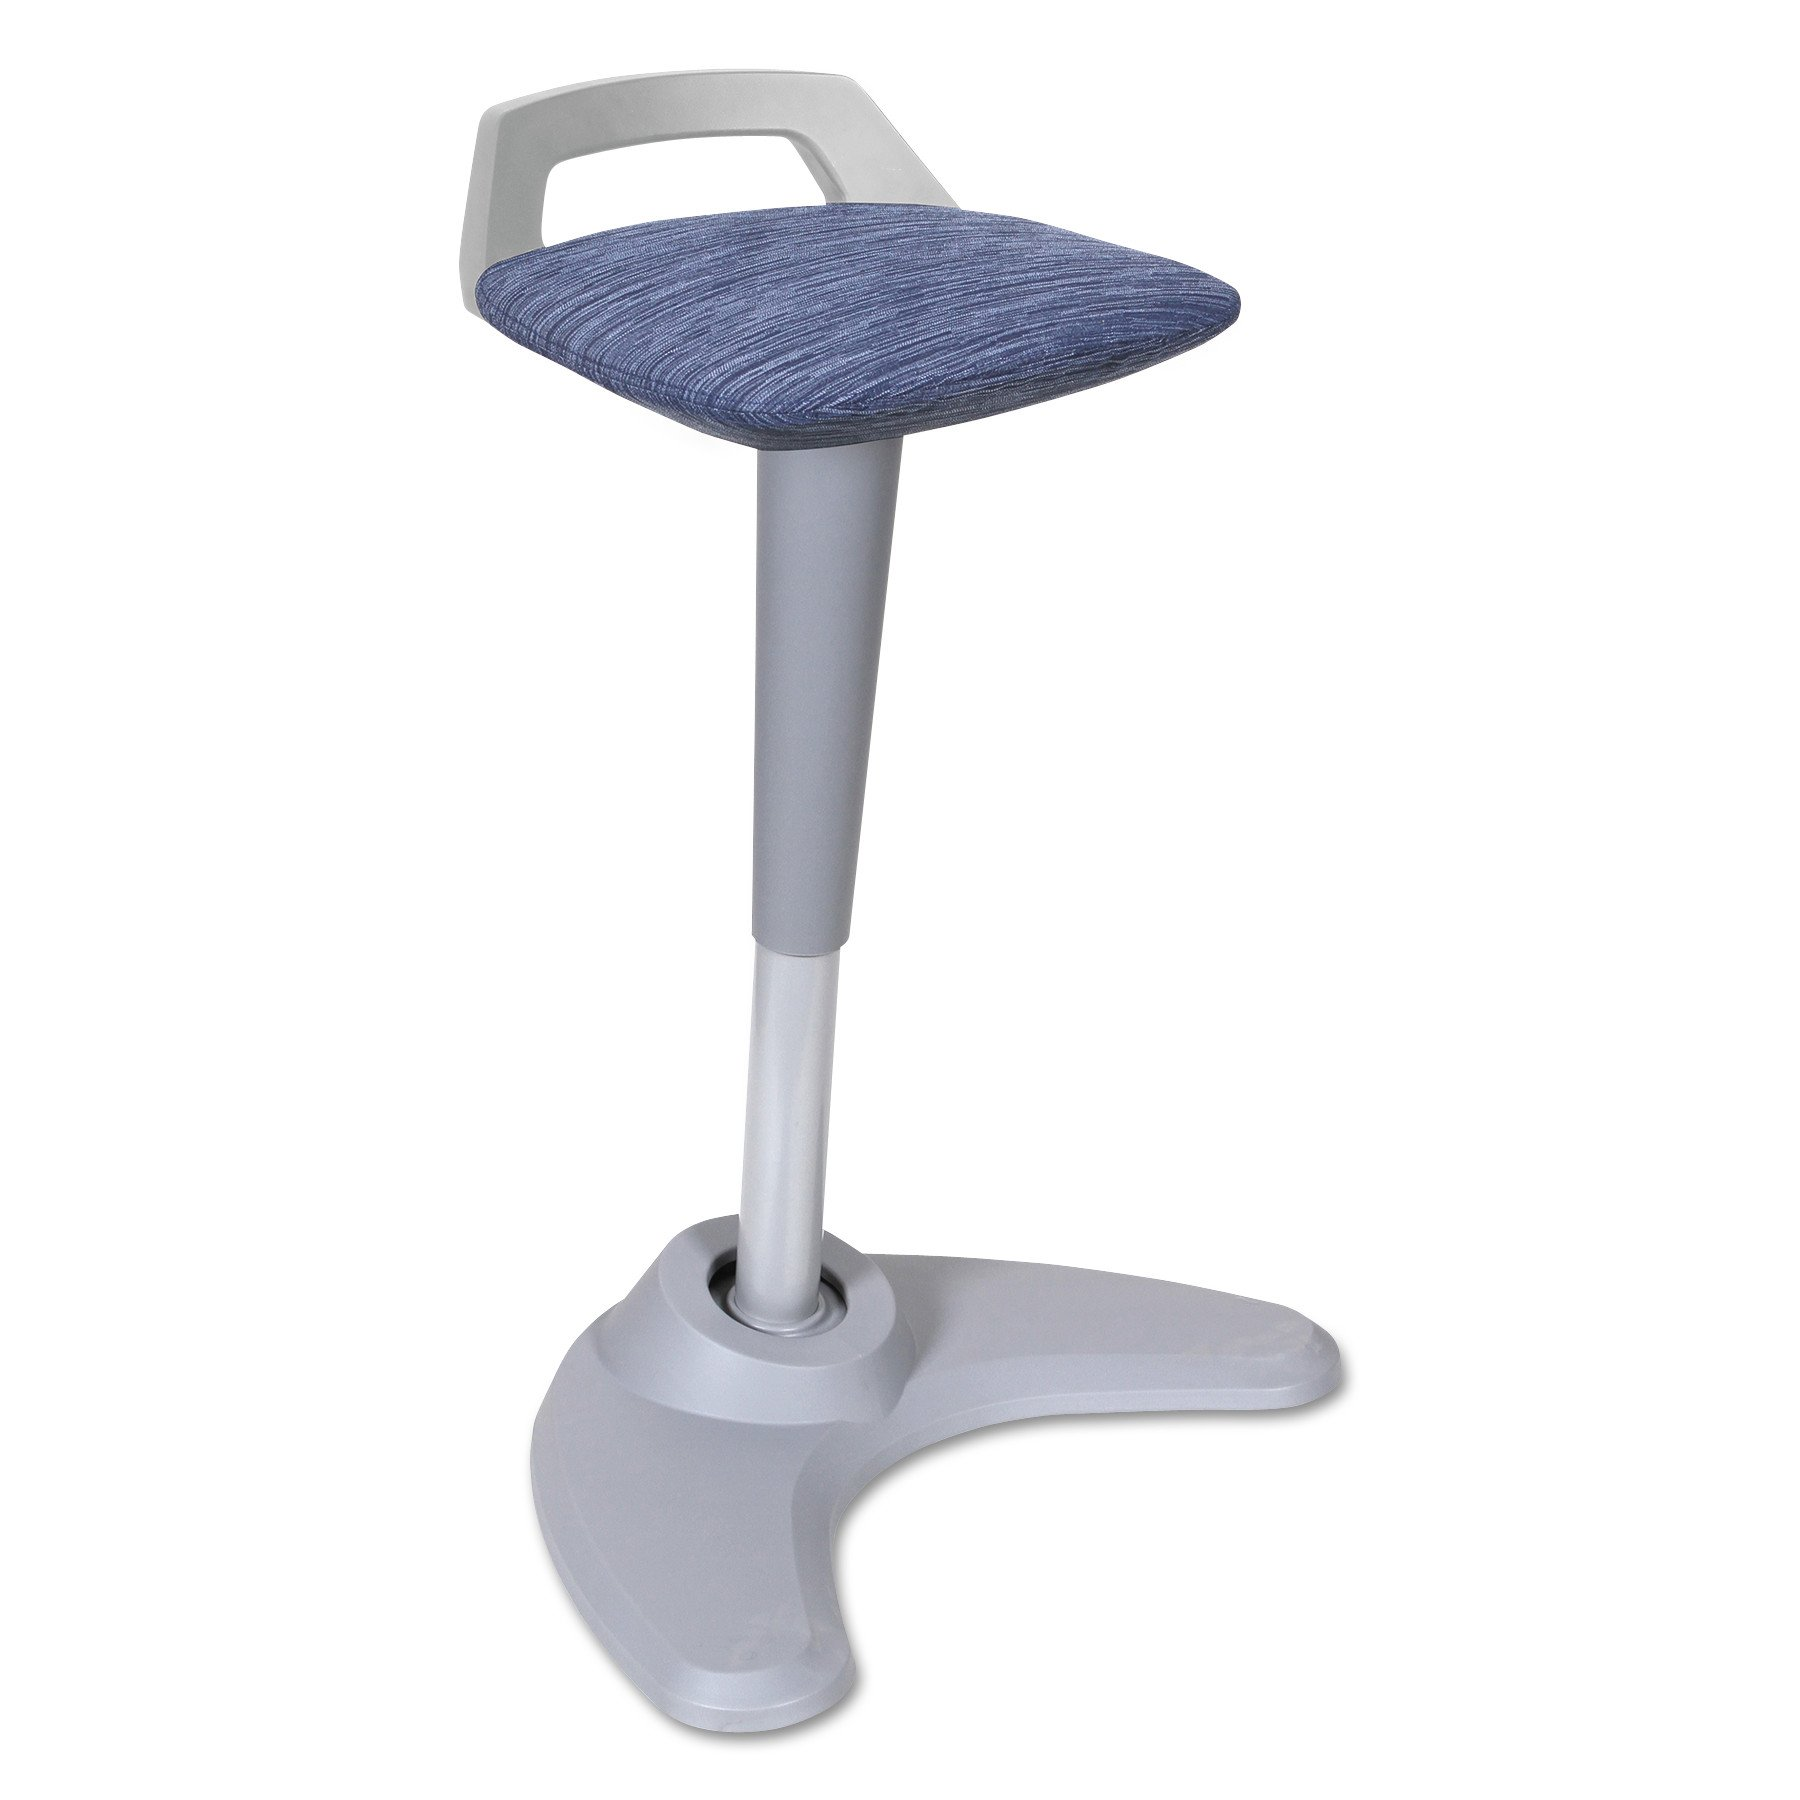 Alera ALEAE36PSBU AdaptivErgo Sit to Stand Perch Stool, Blue with Silver Base by Alera